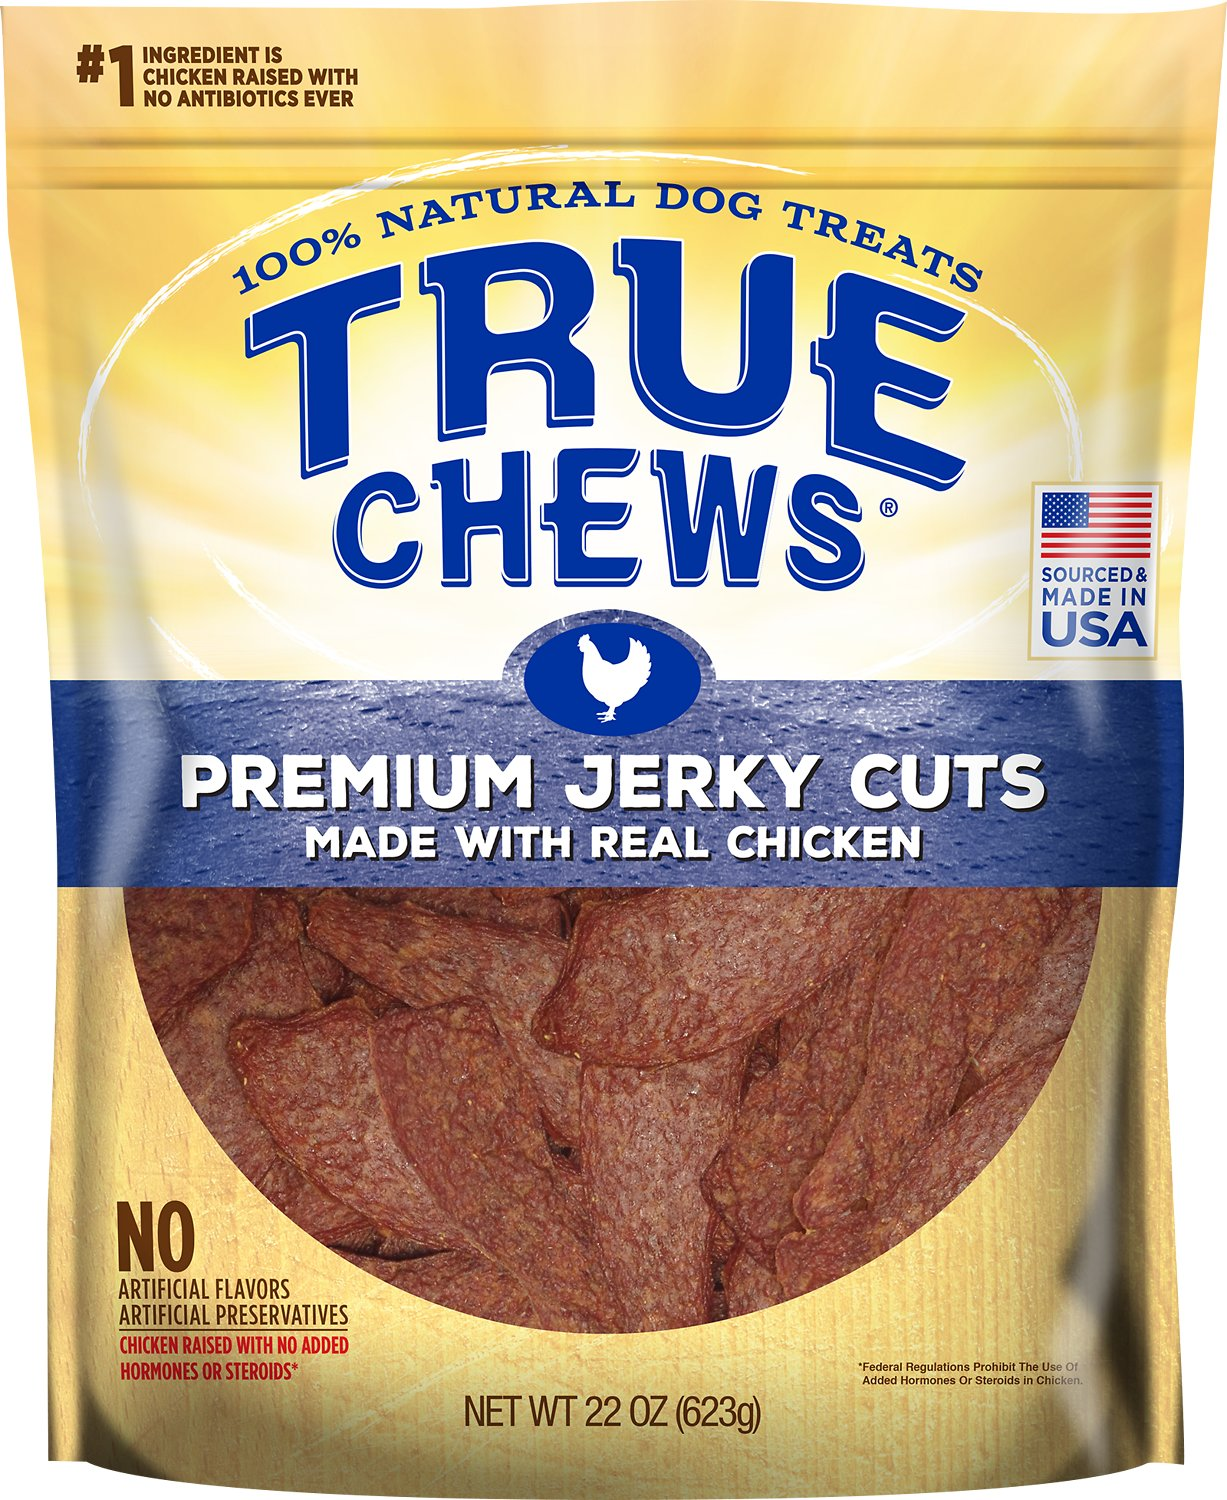 True Chews Premium Jerky Cuts with Real Chicken Dog Treats Image